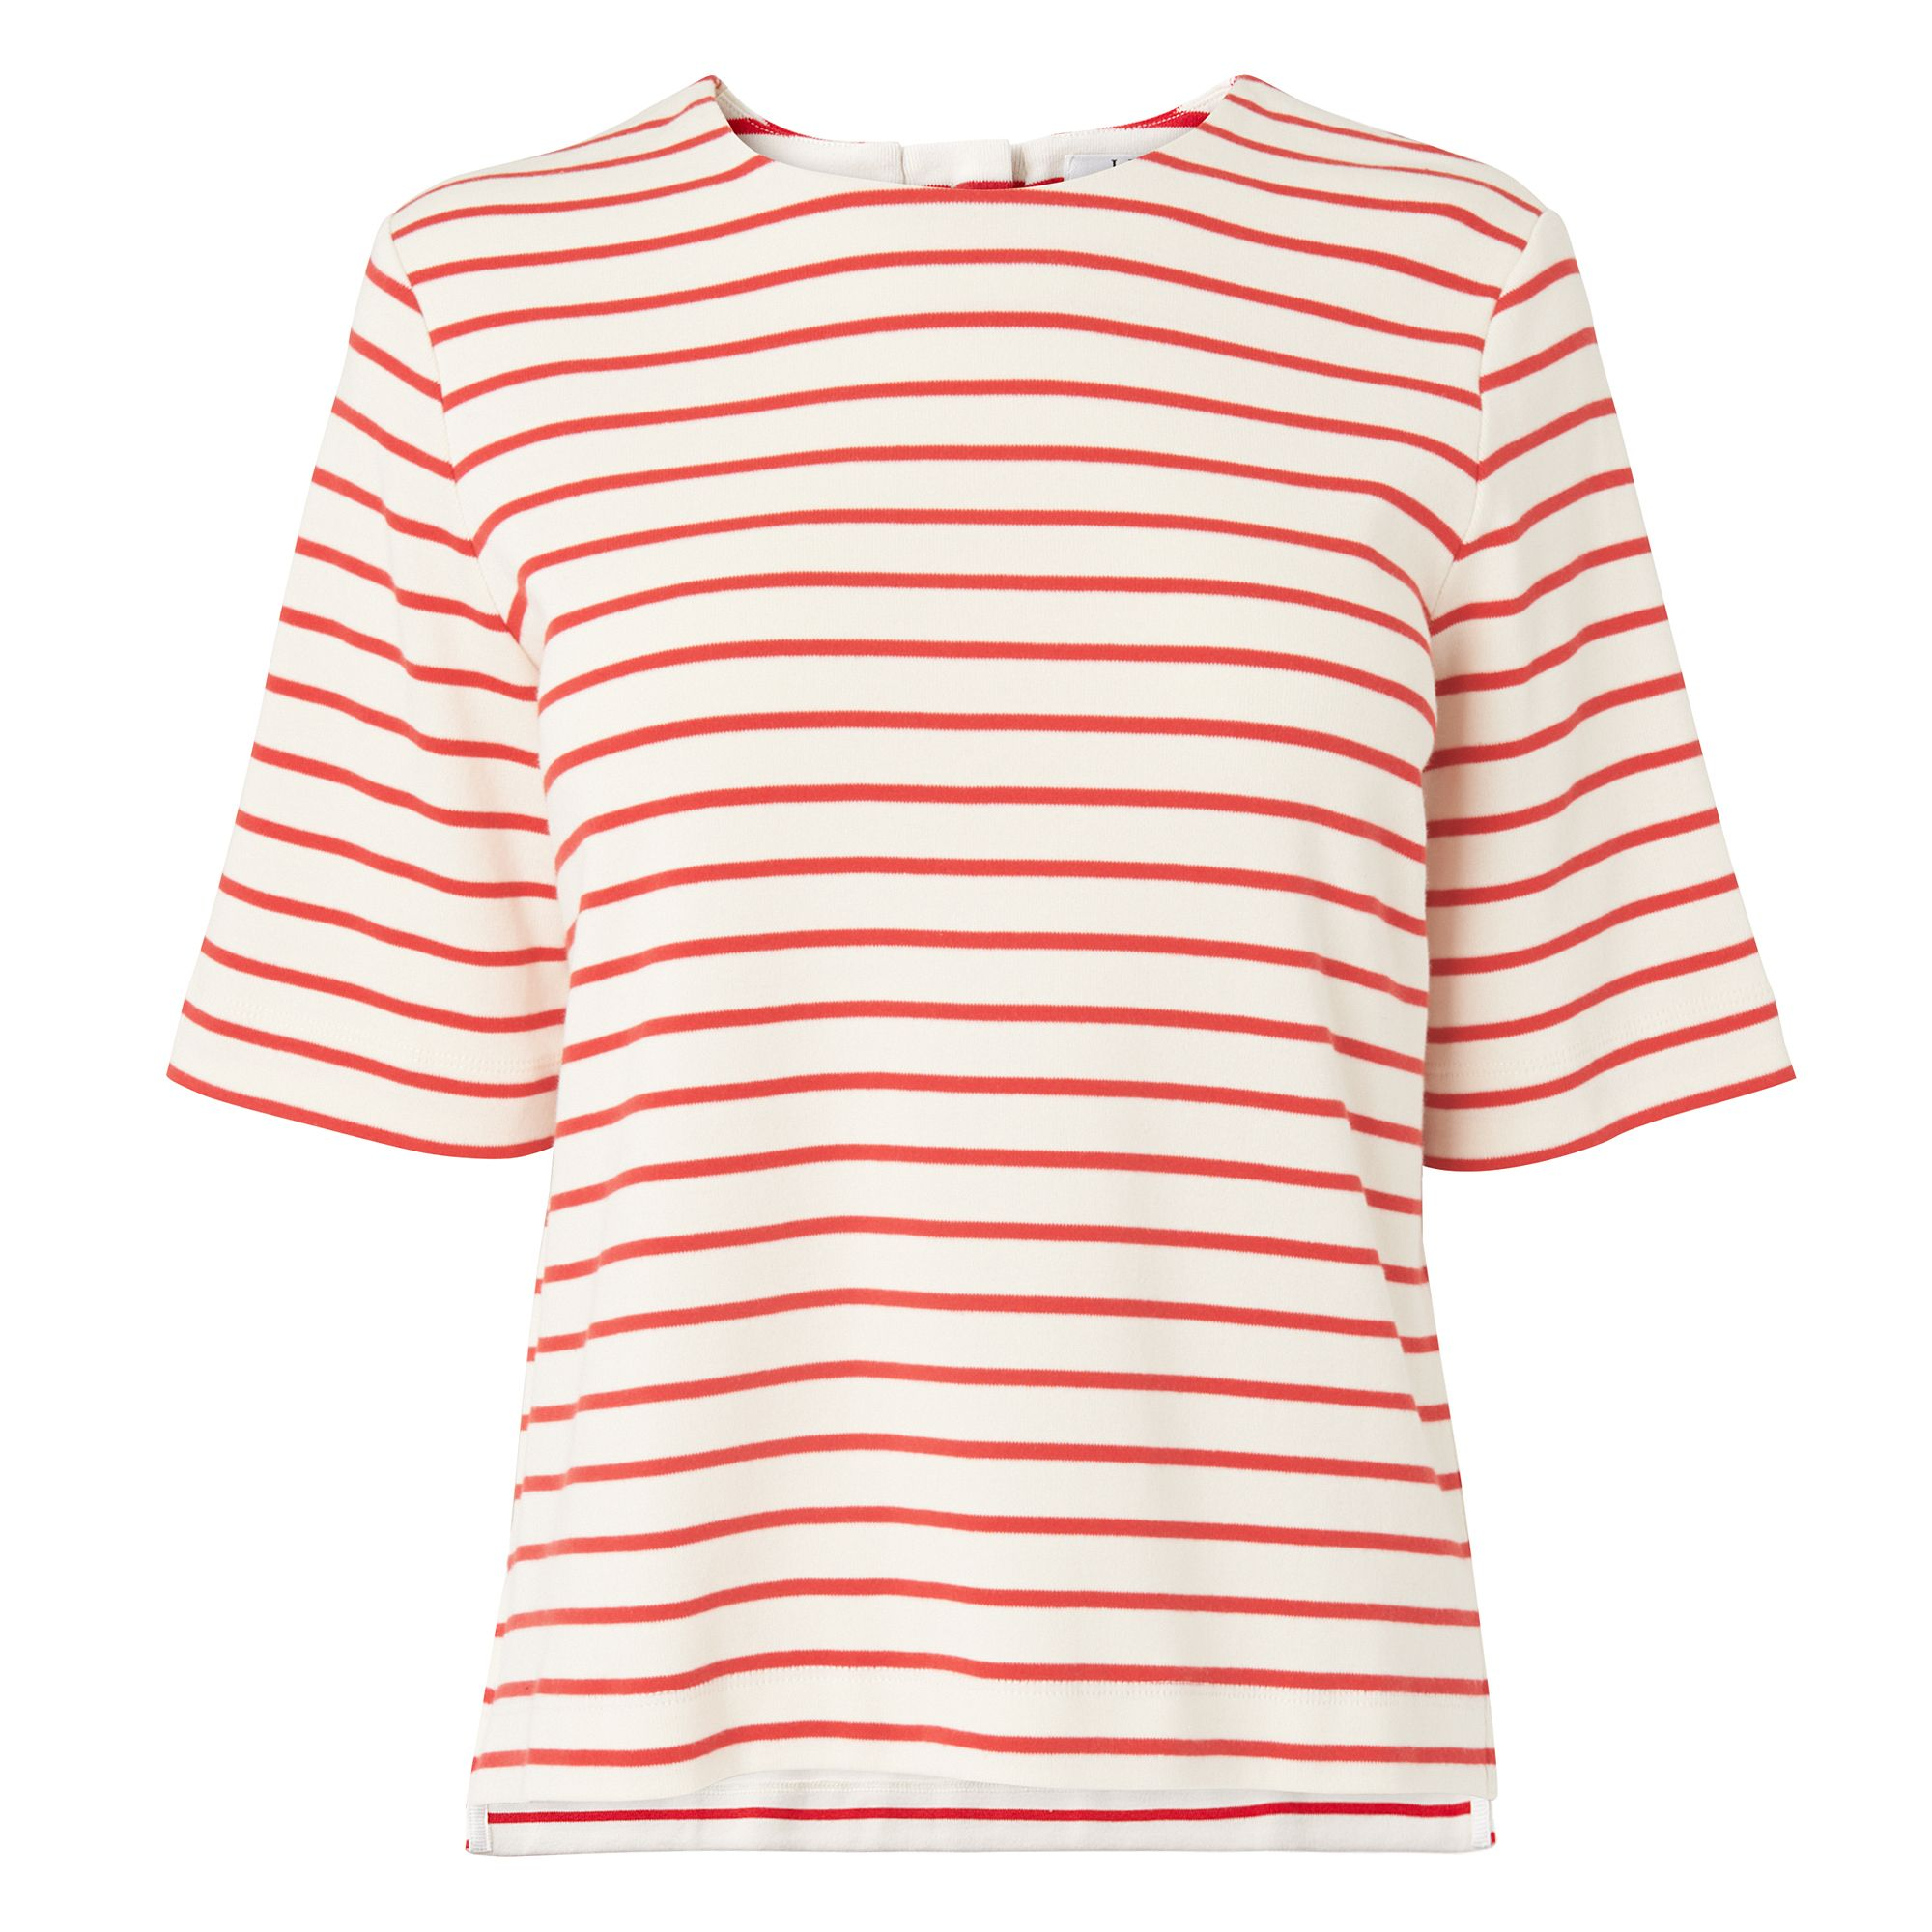 L.K. Bennett Ana Stripe Box Jersey Tops, Red